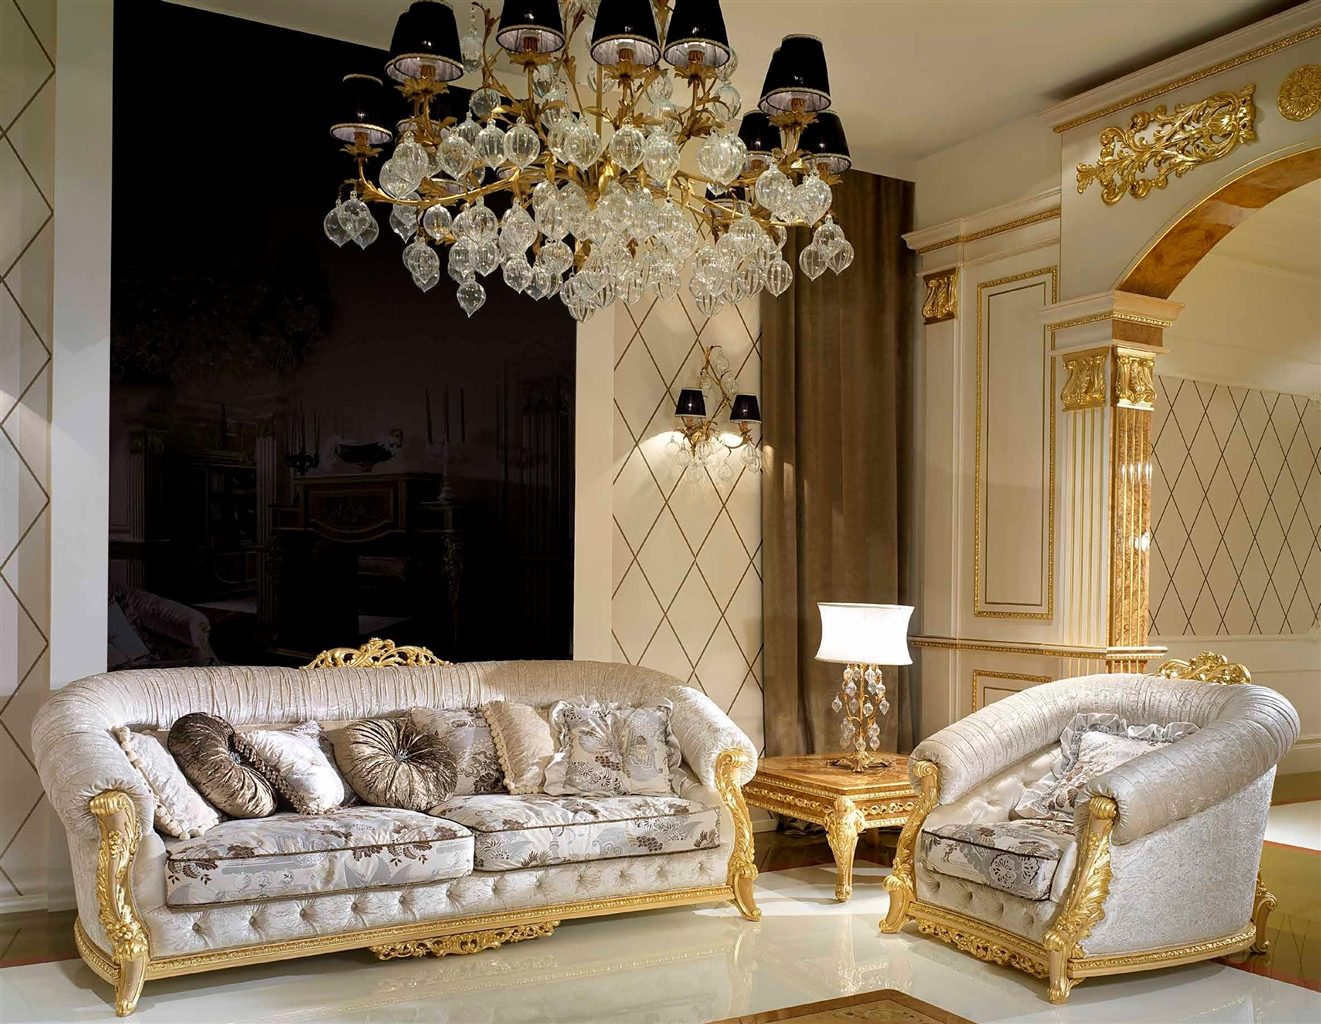 SOFA, COUCH U0026 LOVESEAT Elegant Living Room Set From Our Modern Day Czar  Collection